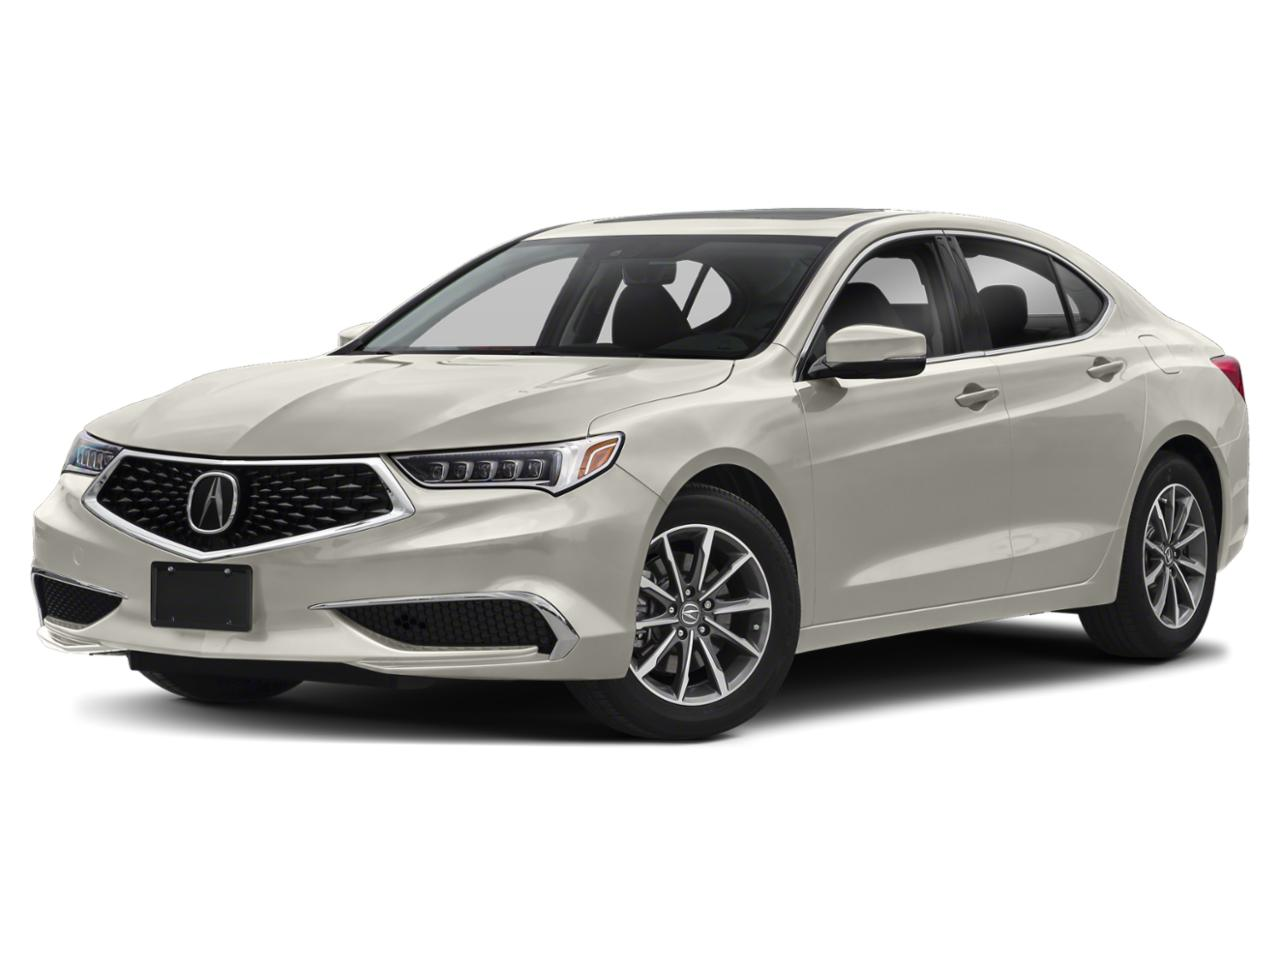 2019 Acura TLX Vehicle Photo in New Castle, DE 19720